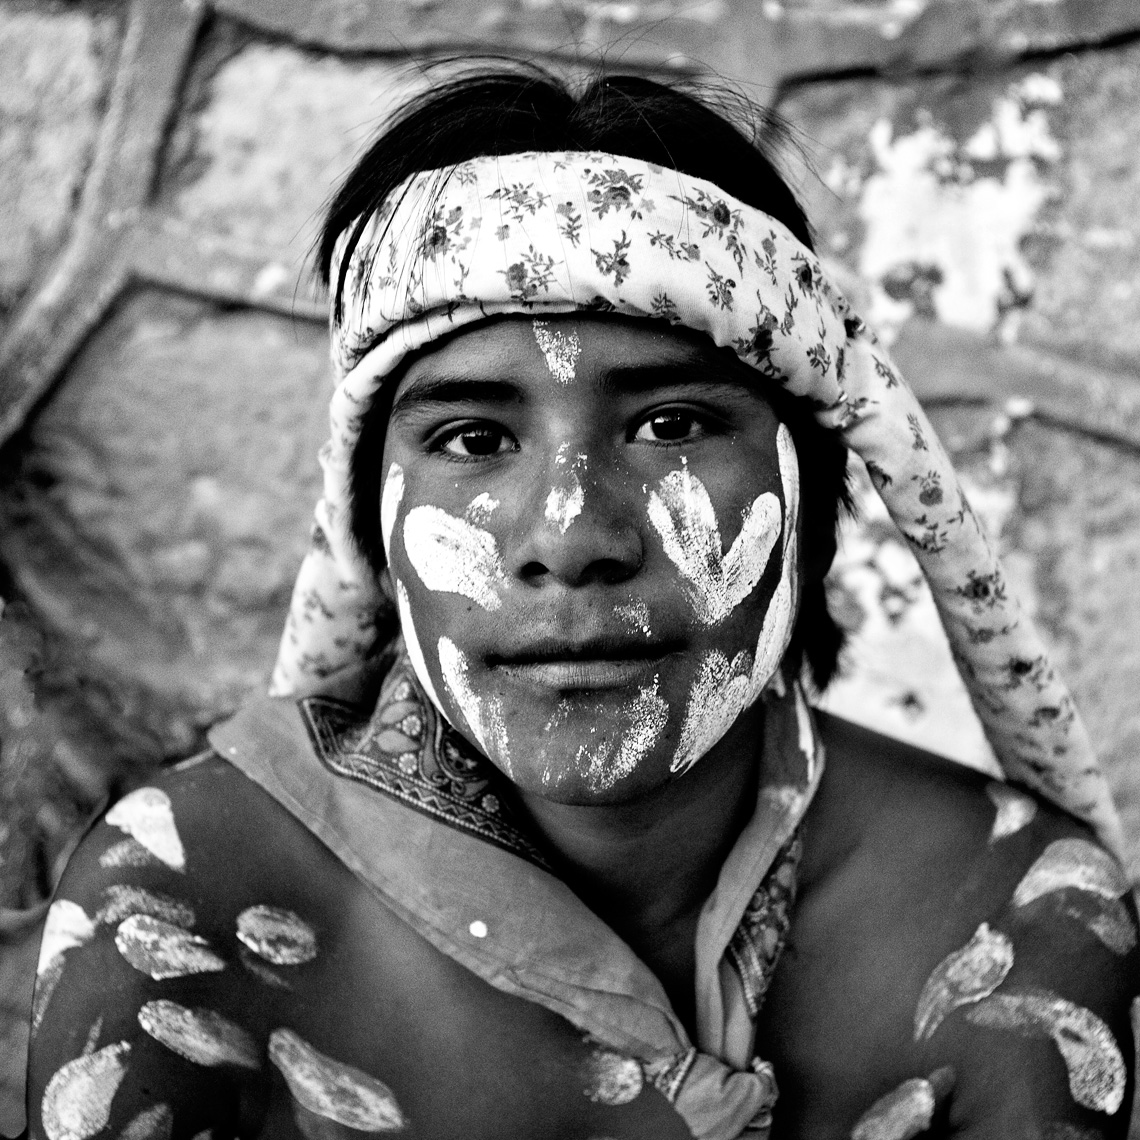 Tarahumara Indian Boy -1.jpg